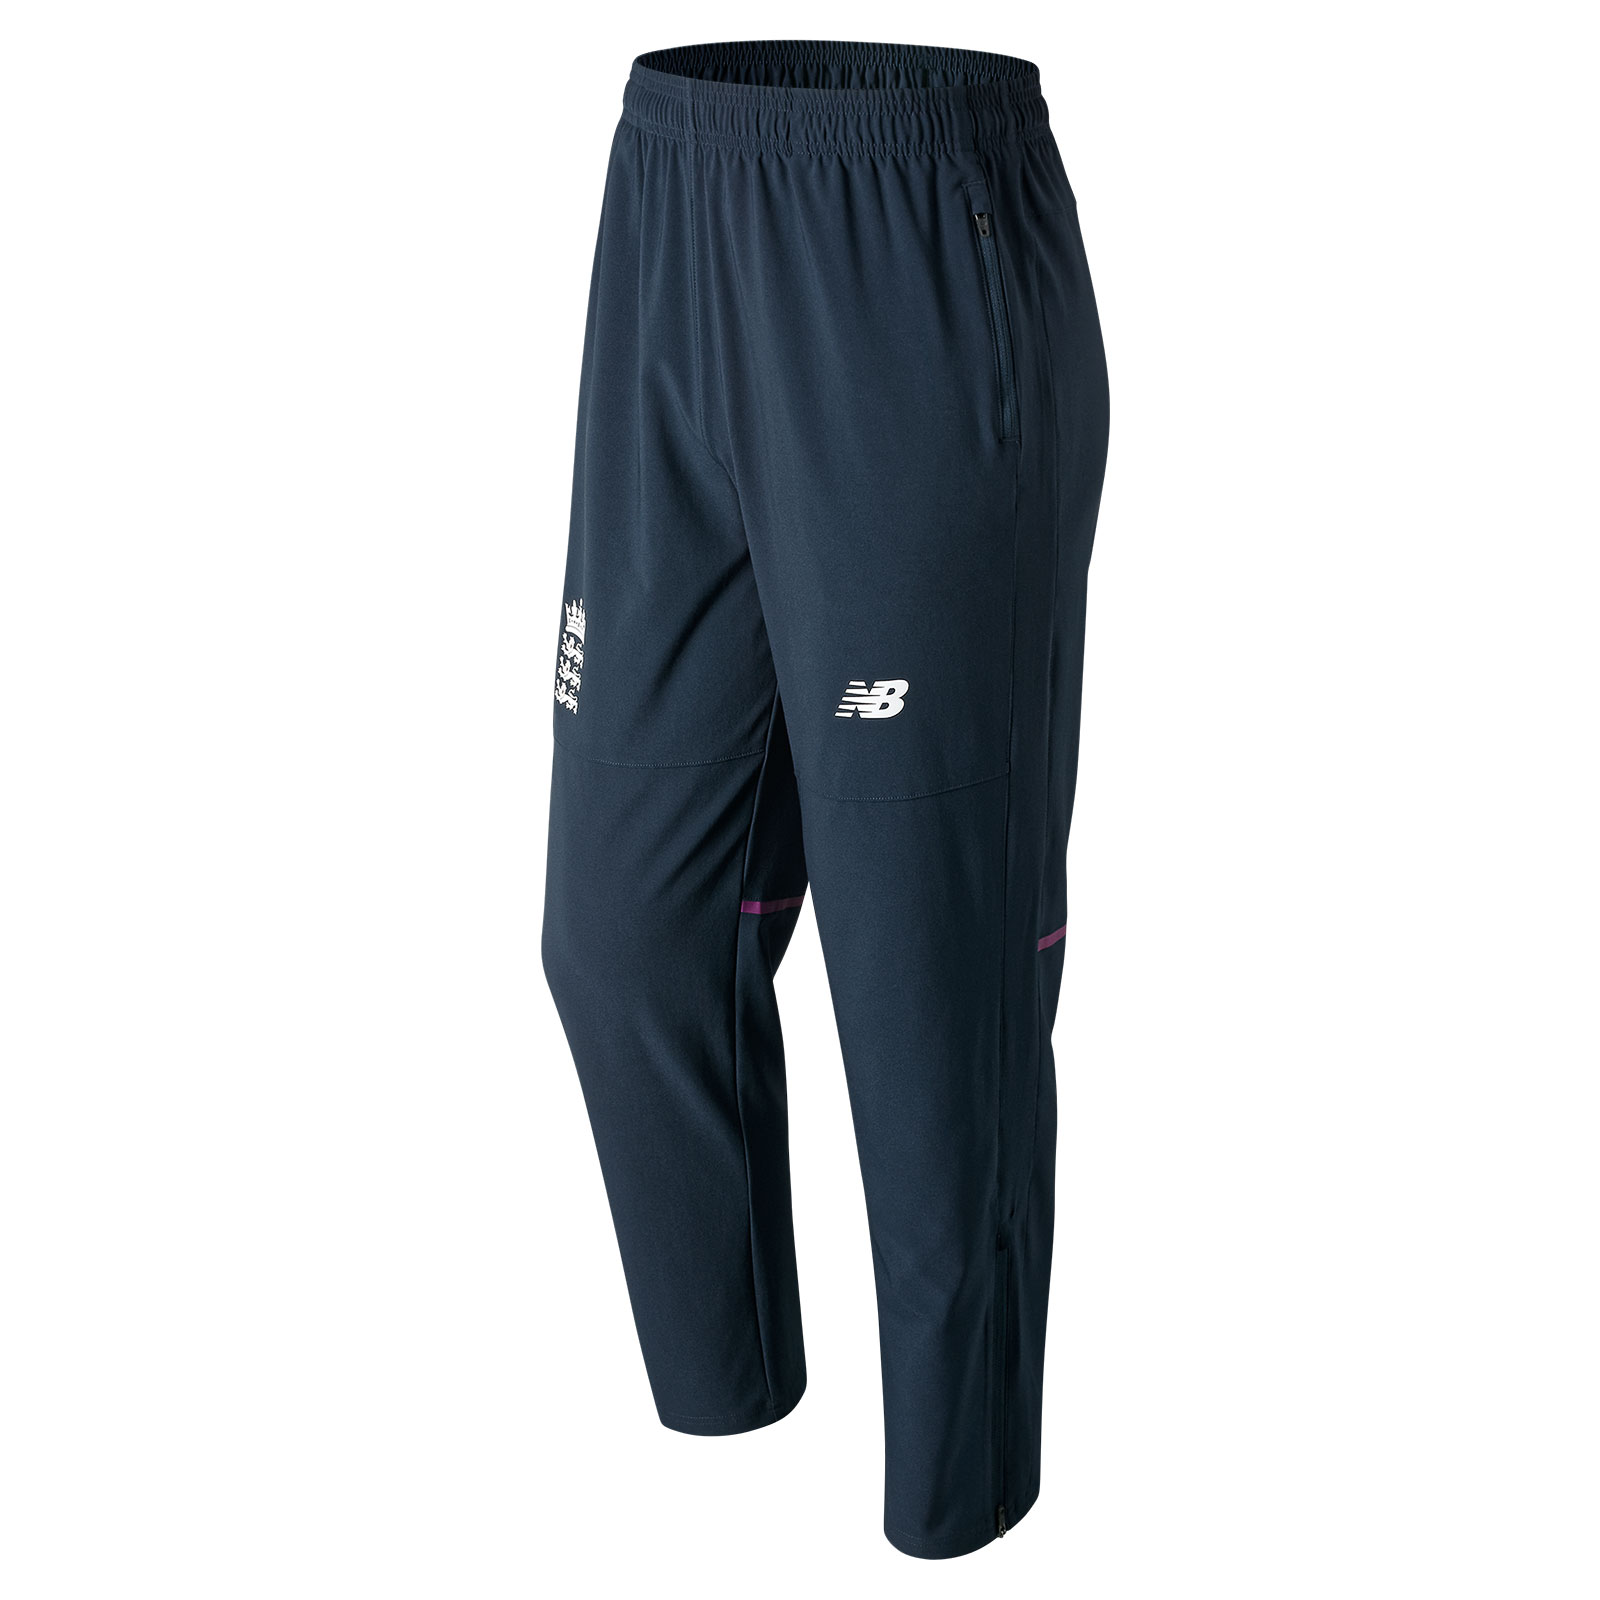 35bb3a81fba27 New Balance England Training Trousers   SportingBilly